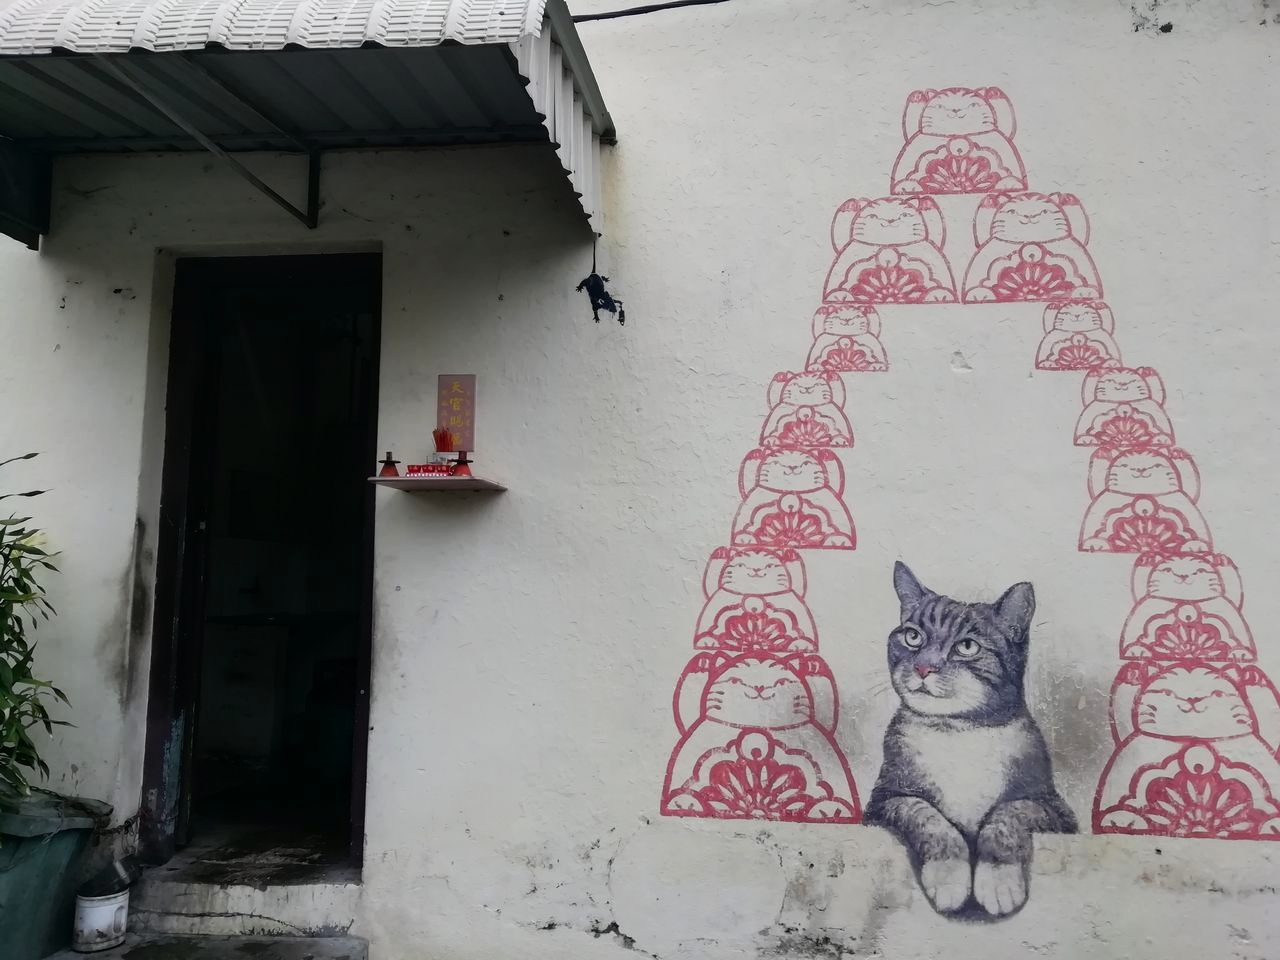 Arte callejero en George Town: Love Me Like Your Fortune Cat.